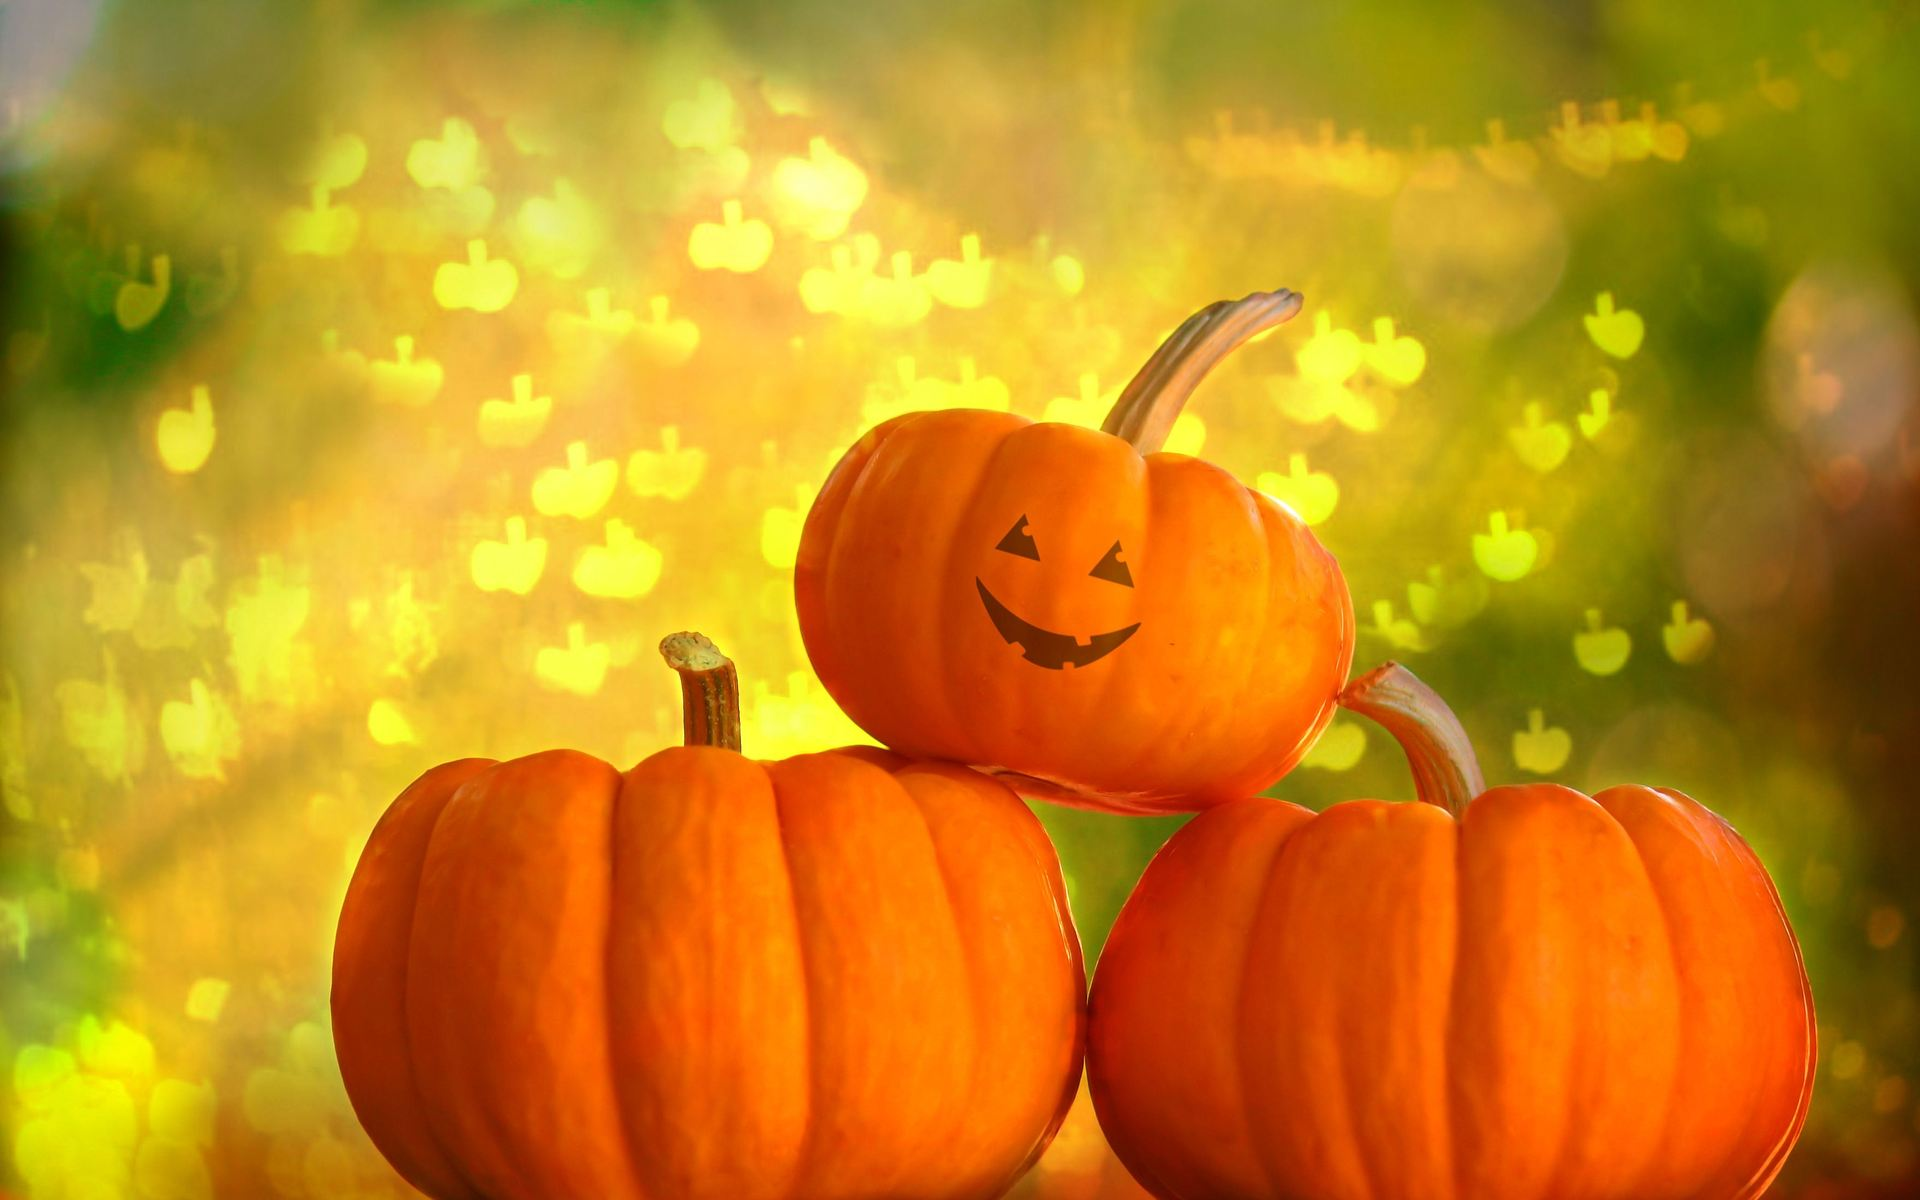 Cool Pumpkin Wallpaper